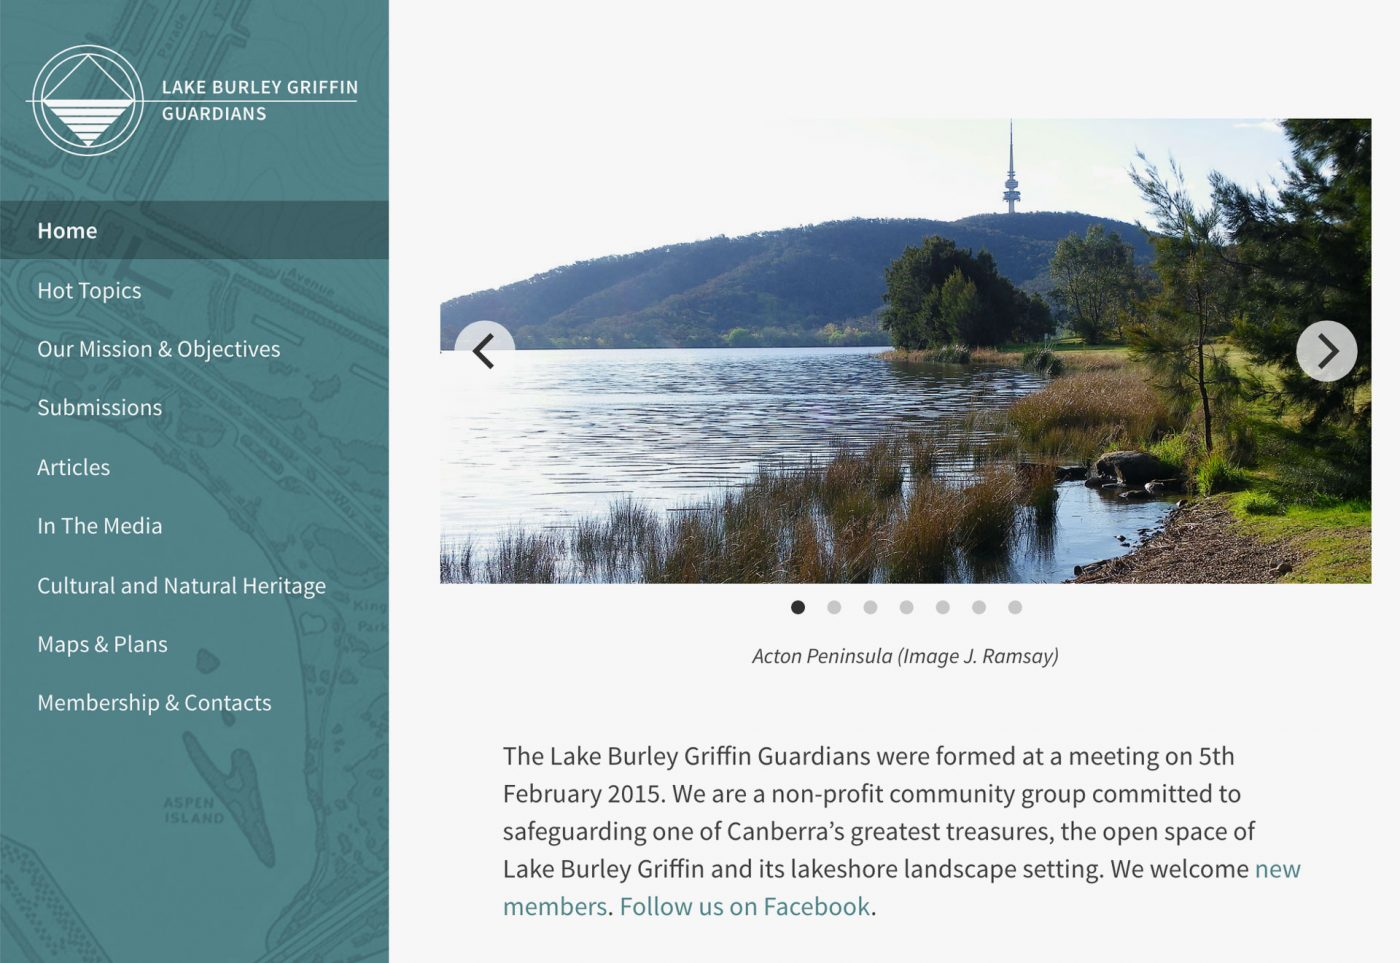 Lake Burley Griffin Guardians home page